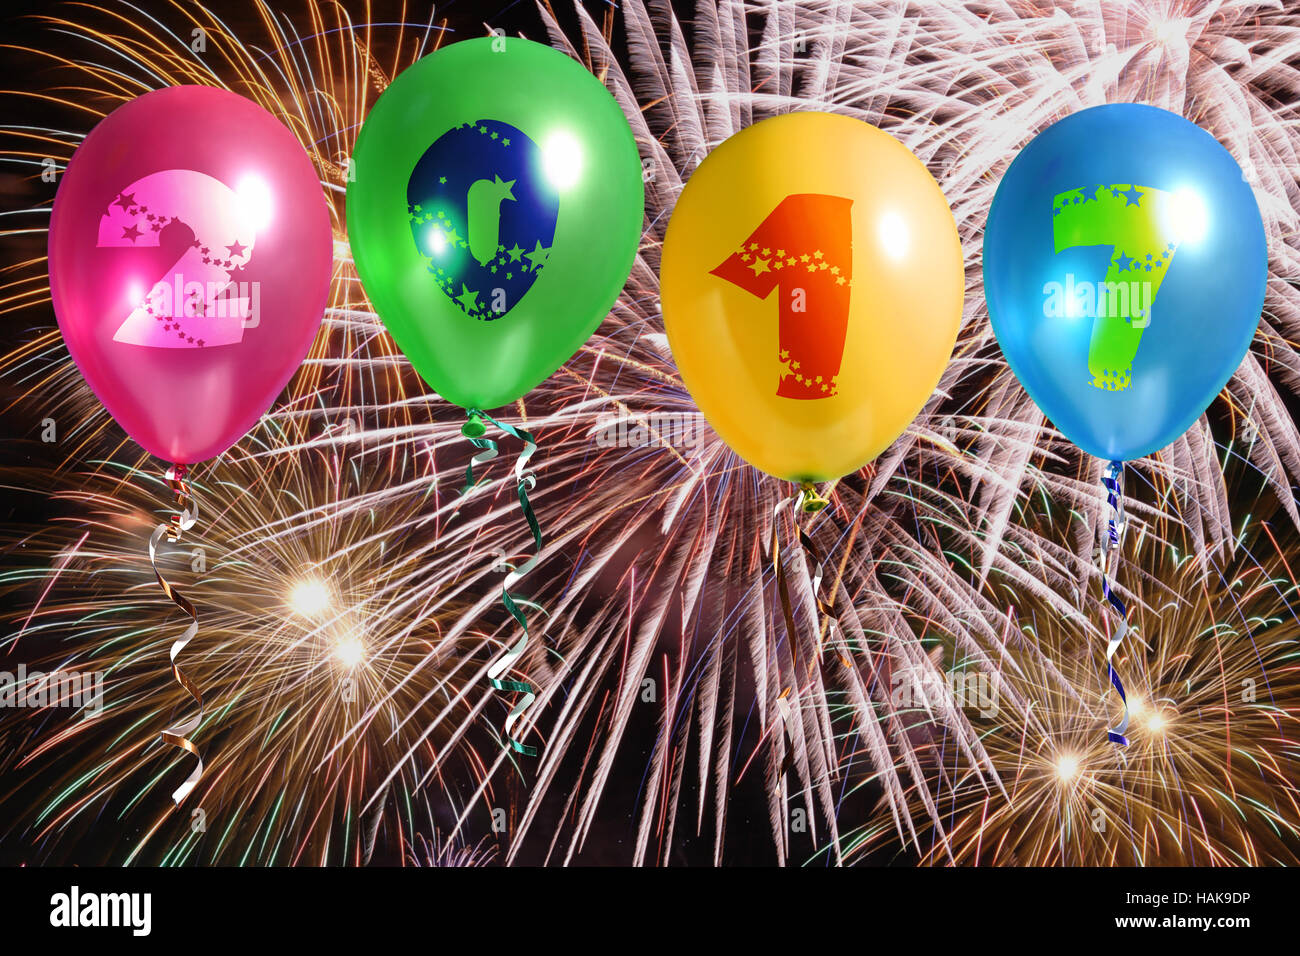 Four colorful balloons with 2017 New Year digits against fireworks - Stock Image